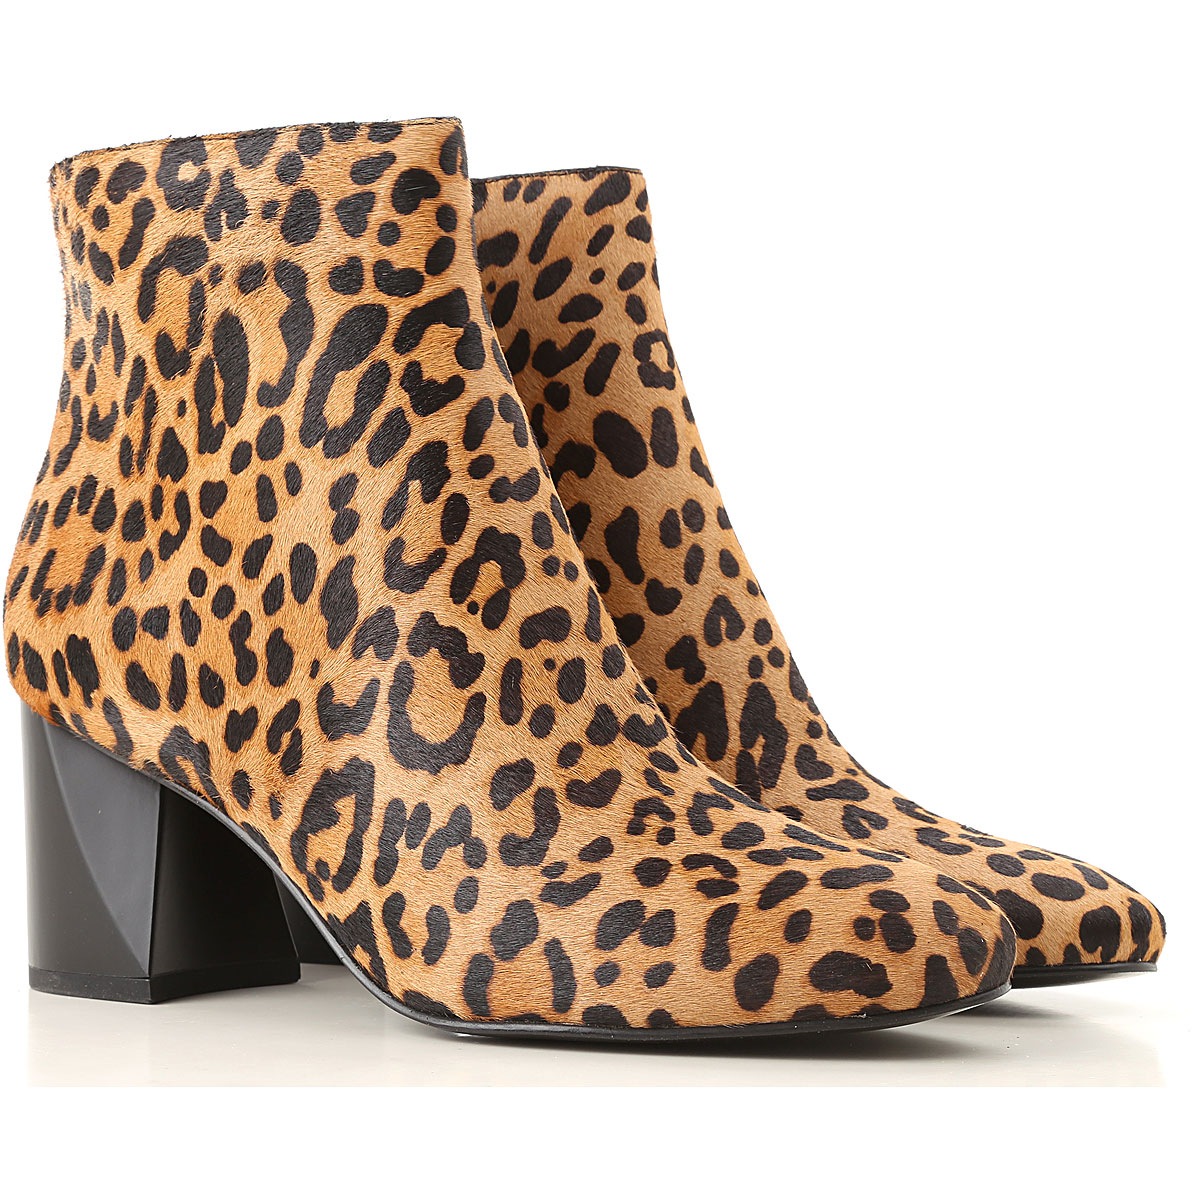 Kendall Kylie Boots for Women, Booties, Tan, Fur, 2019, 8.5 9